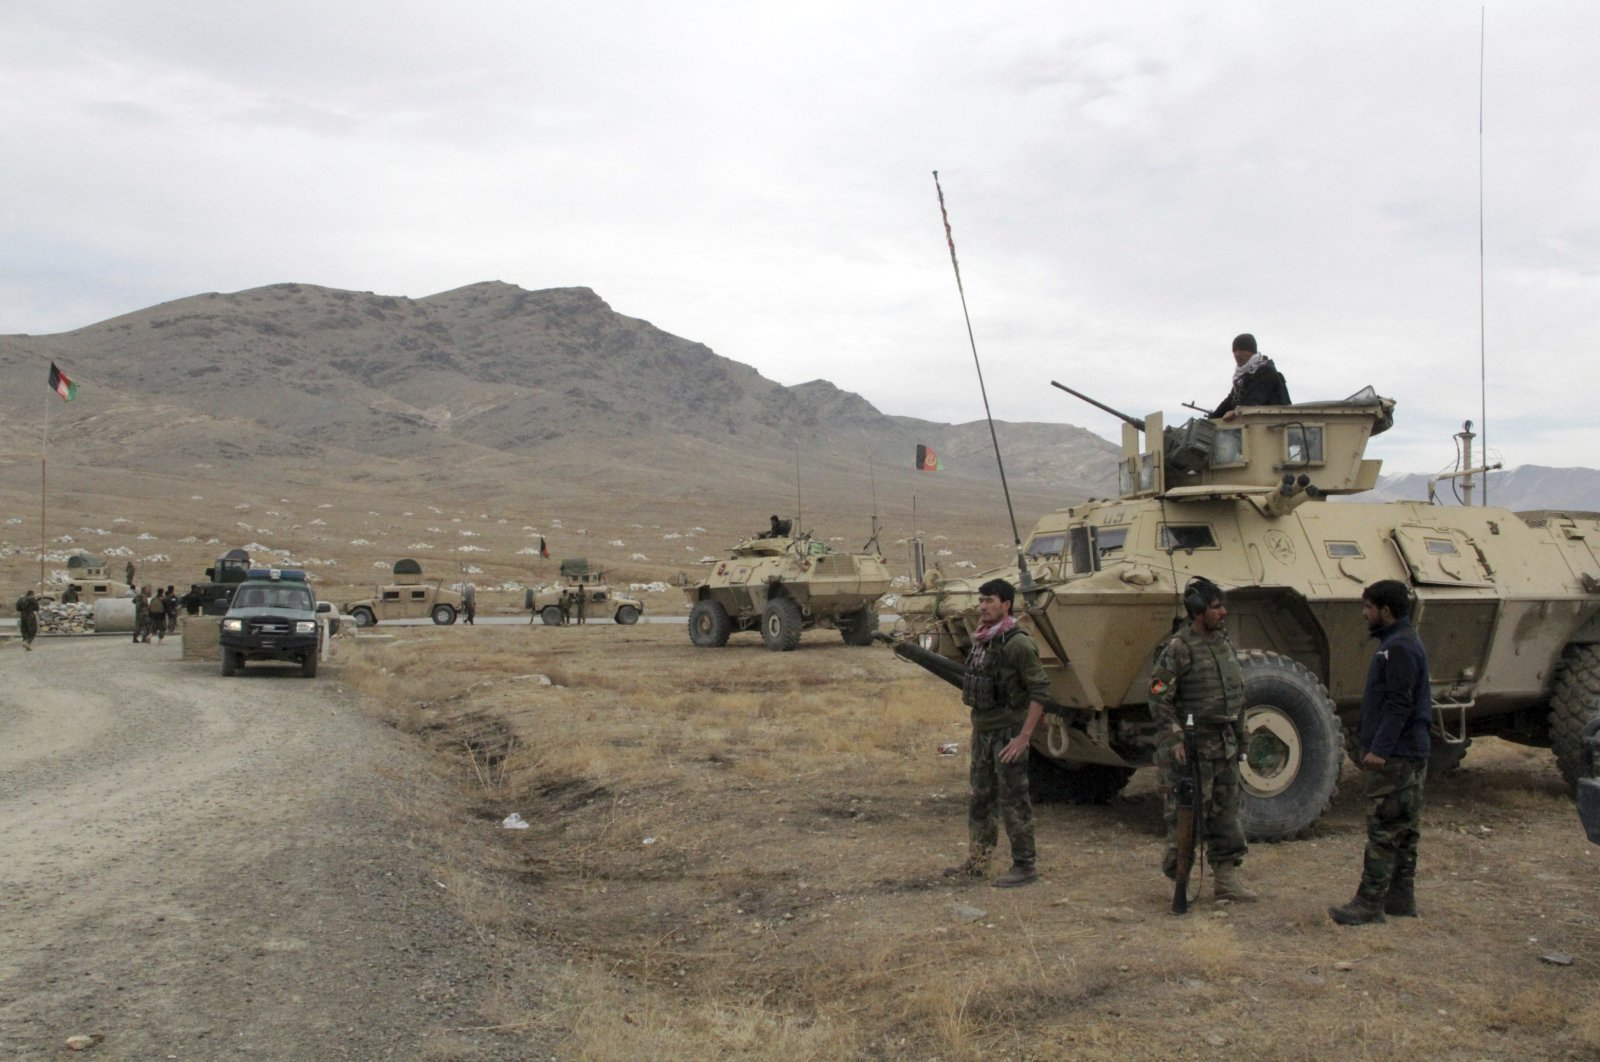 Afghan national army soldiers arrive at the site of a suicide bombing in Ghazni province west of Kabul, Afghanistan, Sunday, Nov. 29, 2020. (AP Photo)